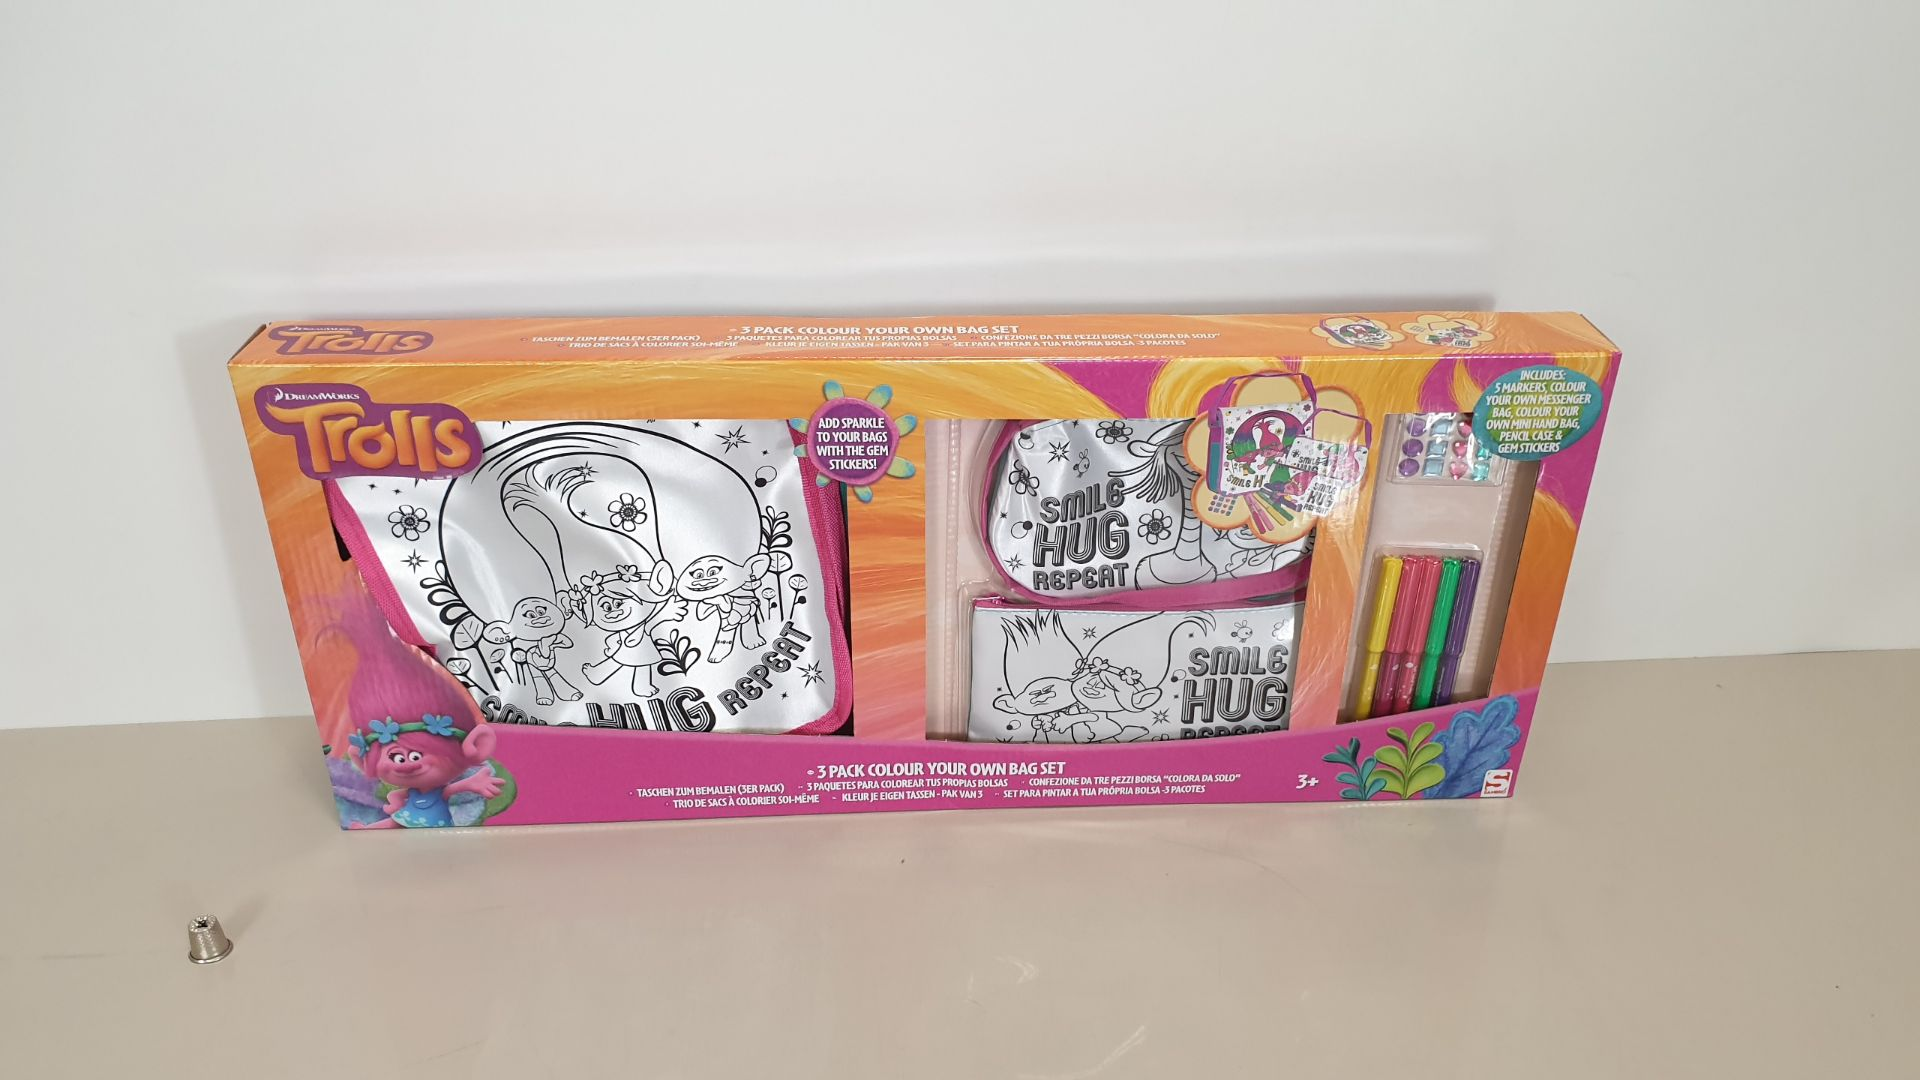 Lot 31 - 60 X BRAND NEW TROLLS (3 PIECE) COLOUR YOUR OWN BAG SET WITH ACCESSORIES IE MARKERS AND GEMS - IN 10